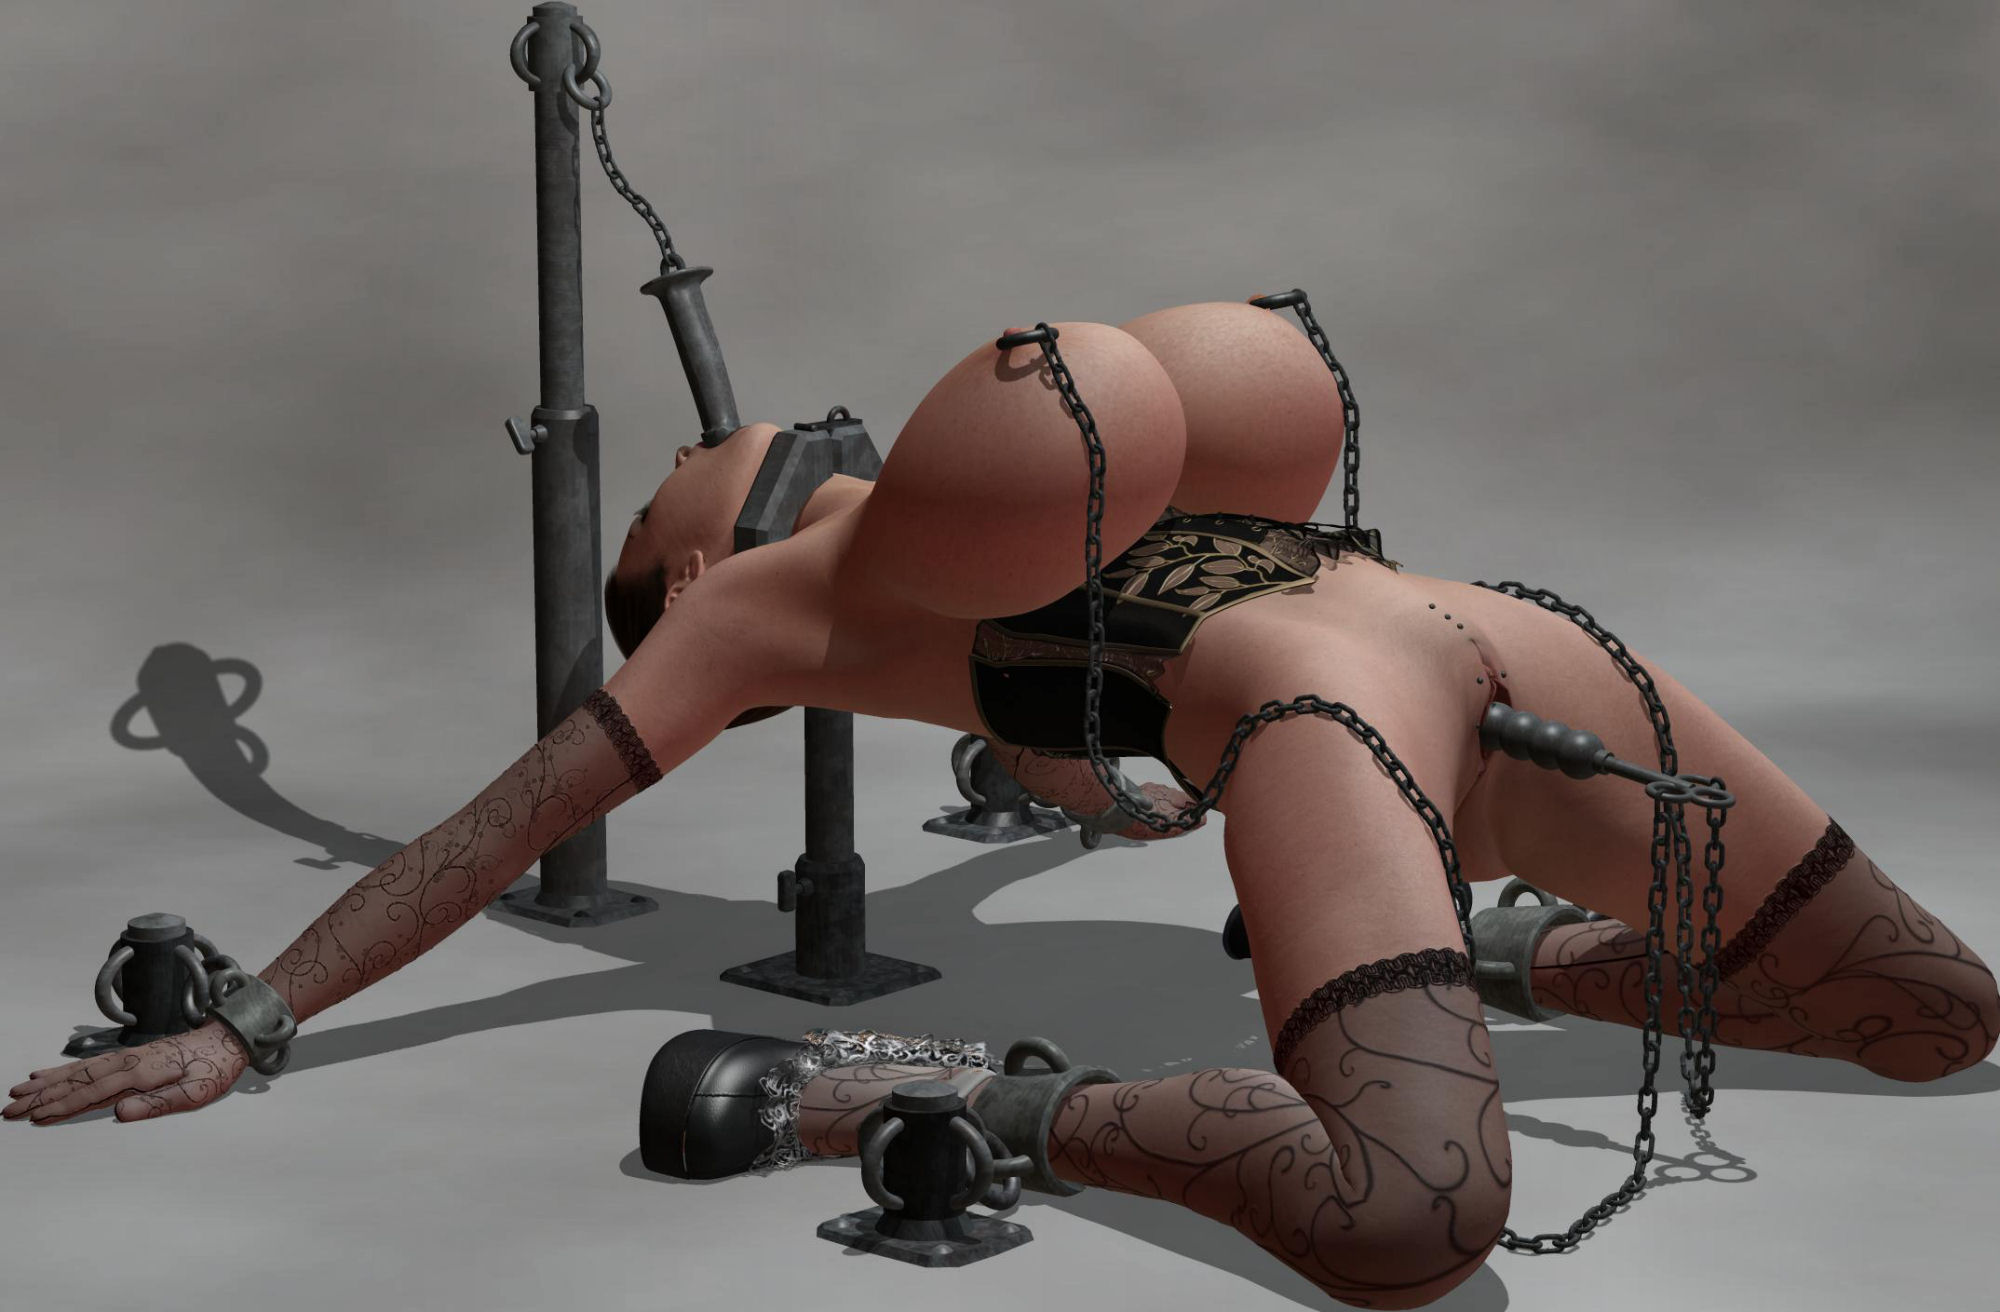 3d wallpaper of wild torture sex between  nude scenes